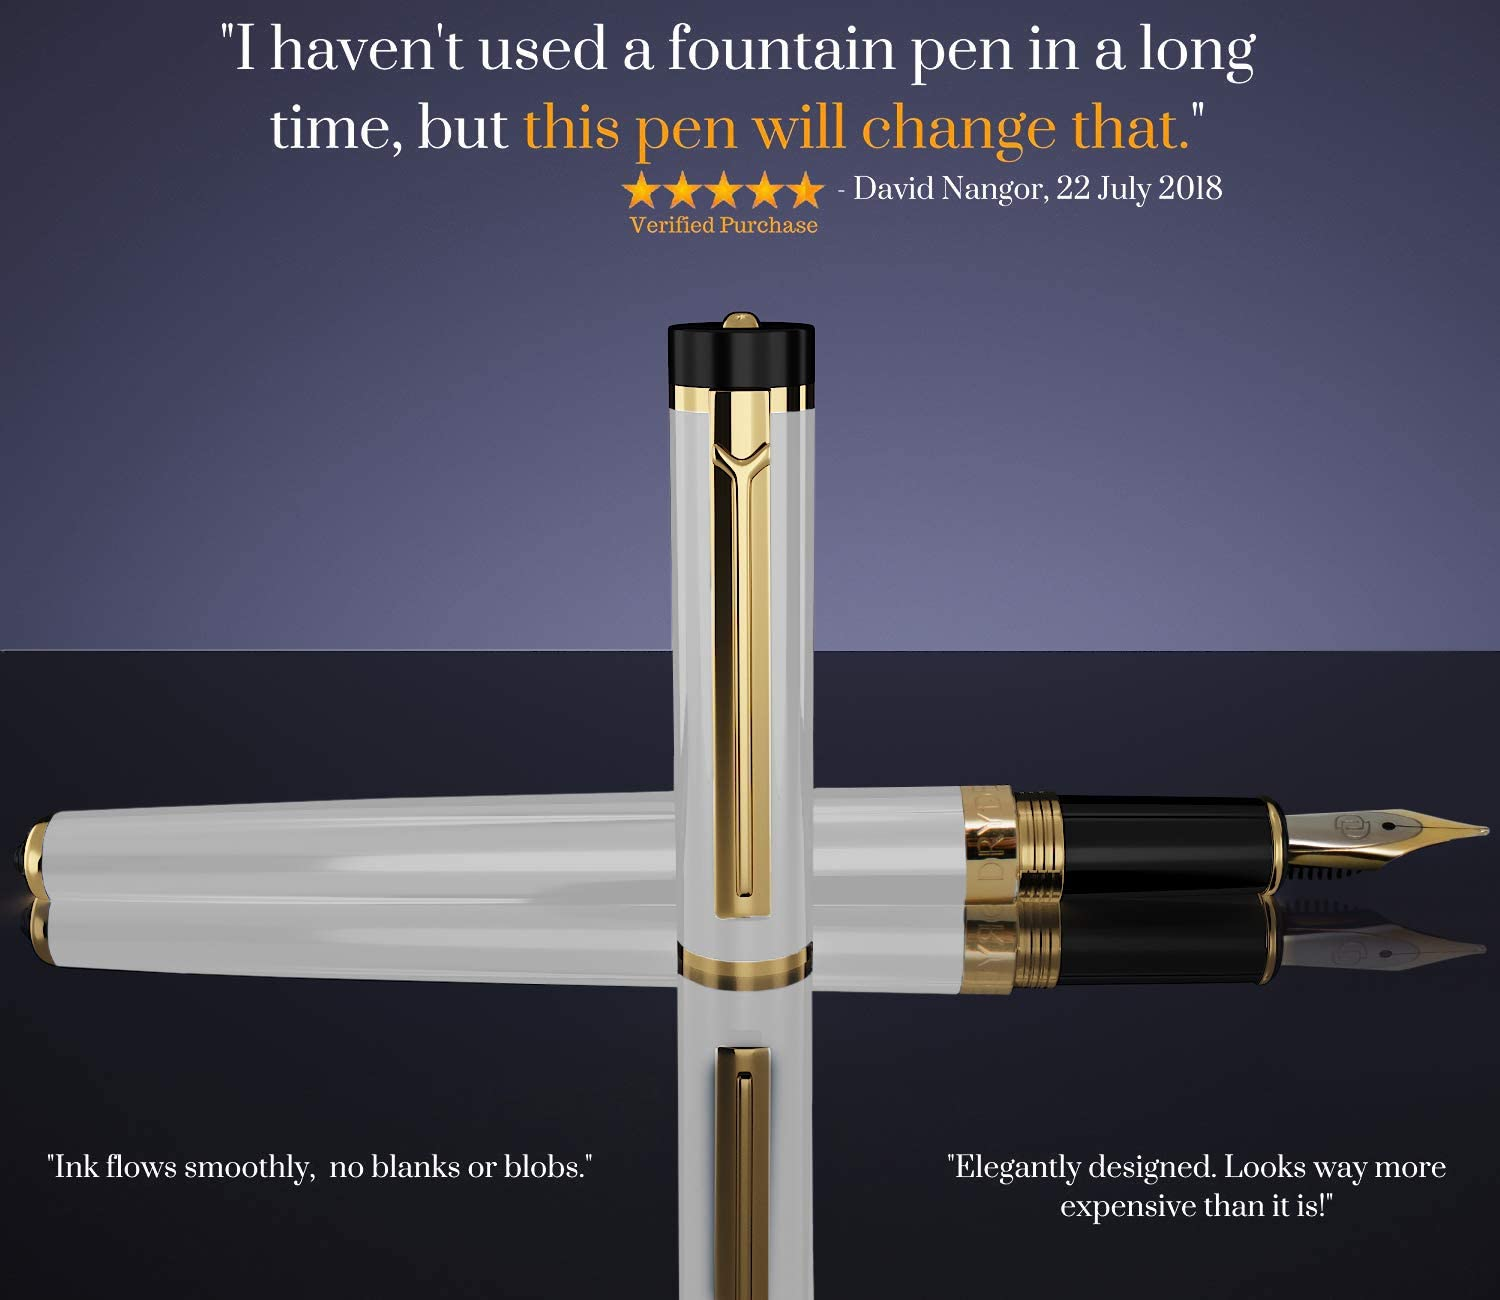 Dryden Fountain Pen Medium Nib Classic Design Pearl White Metallic Finish comes with Ink Bottle Adapter